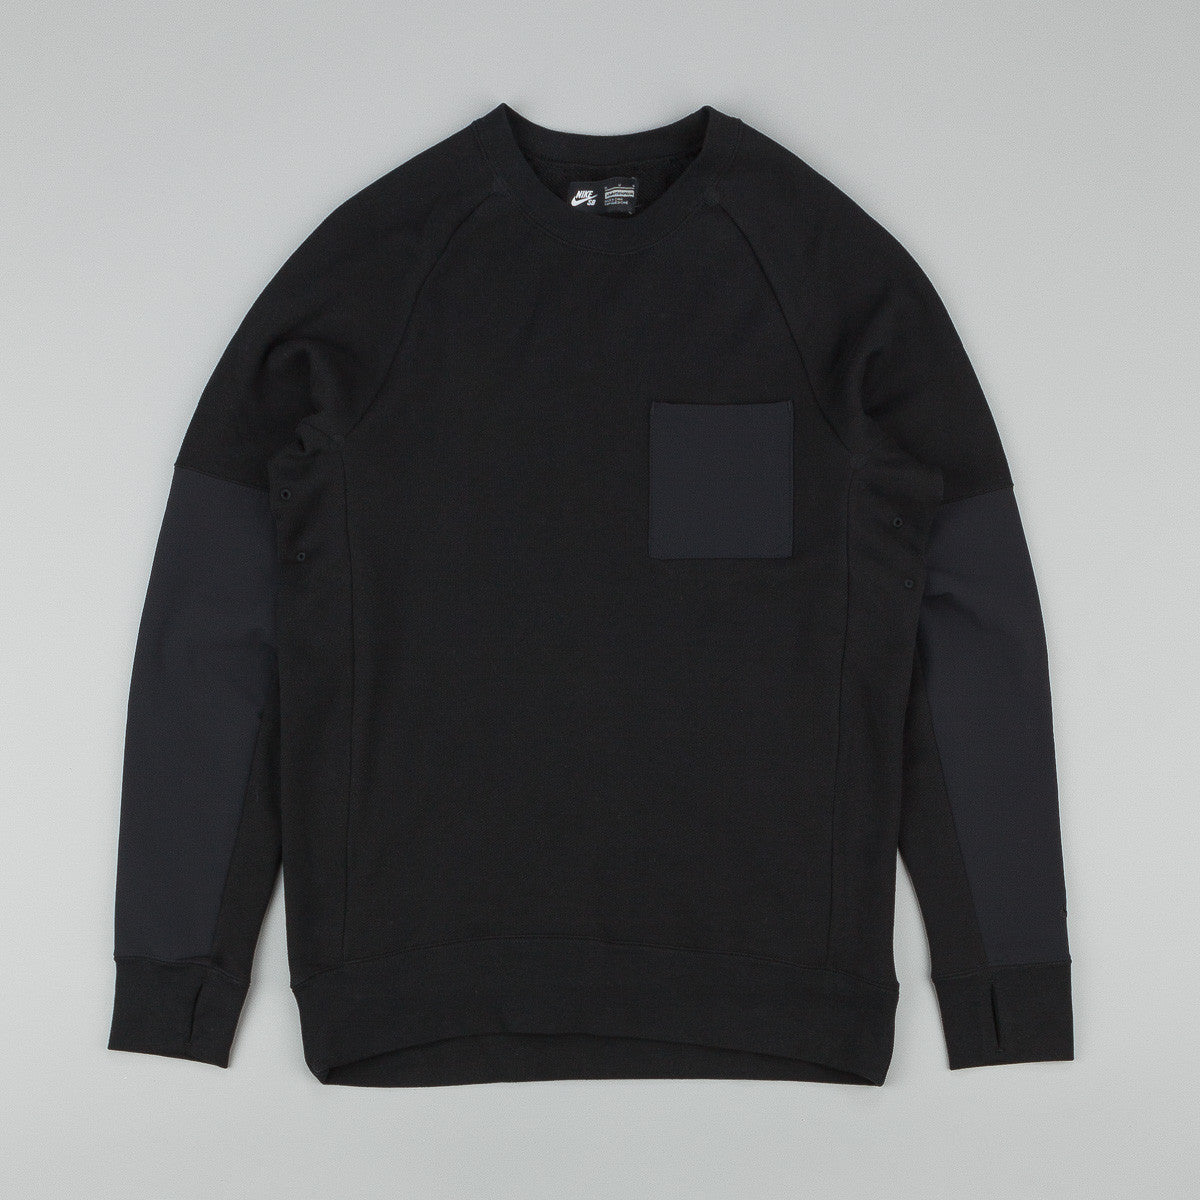 Nike SB Everett Overlay Pocket Crew Neck Sweatshirt